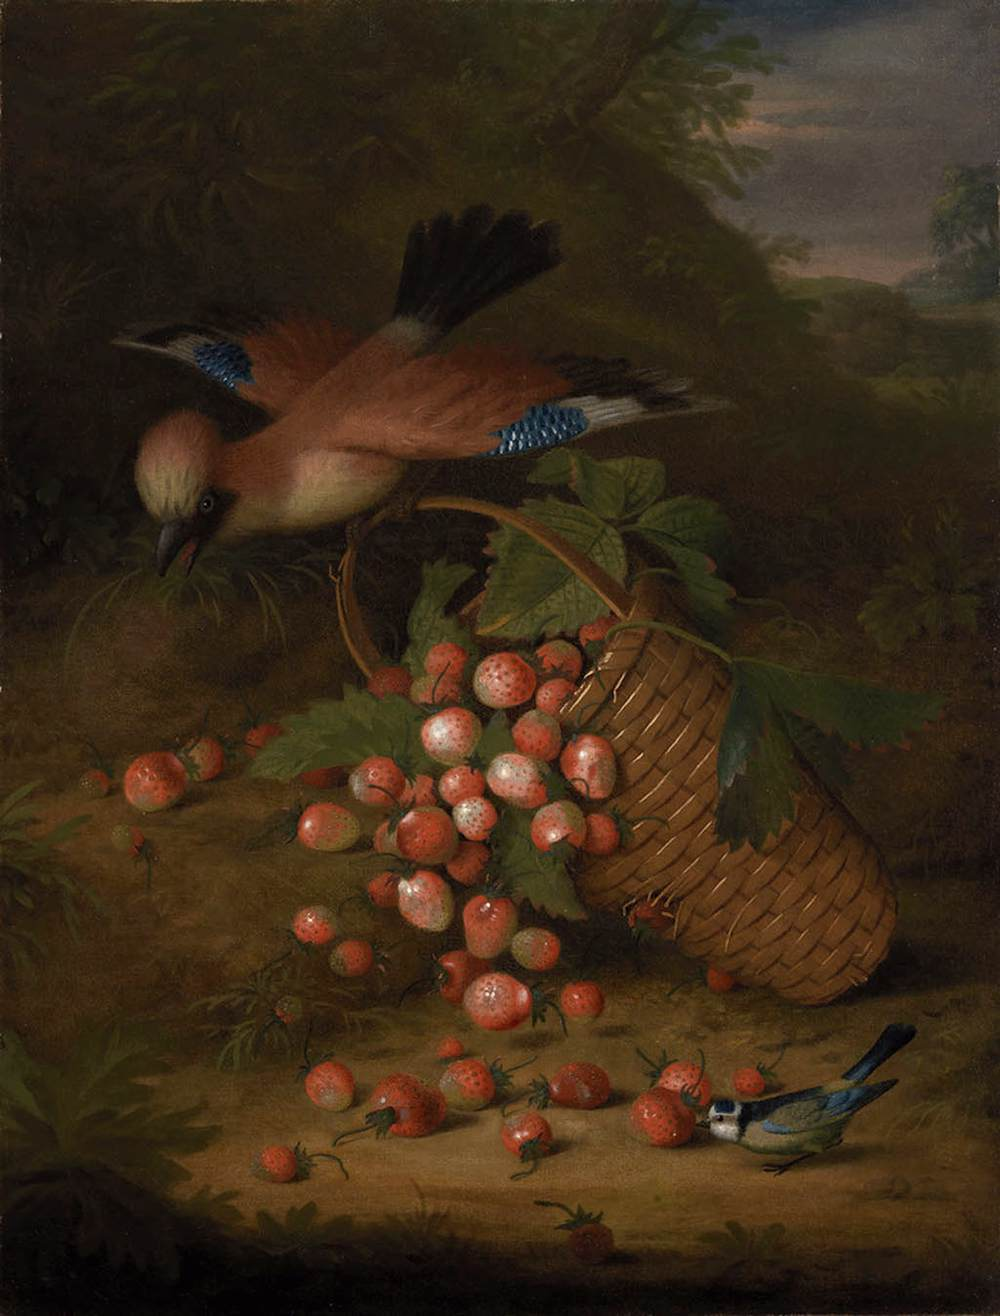 A Jay with a Basket of Strawberries